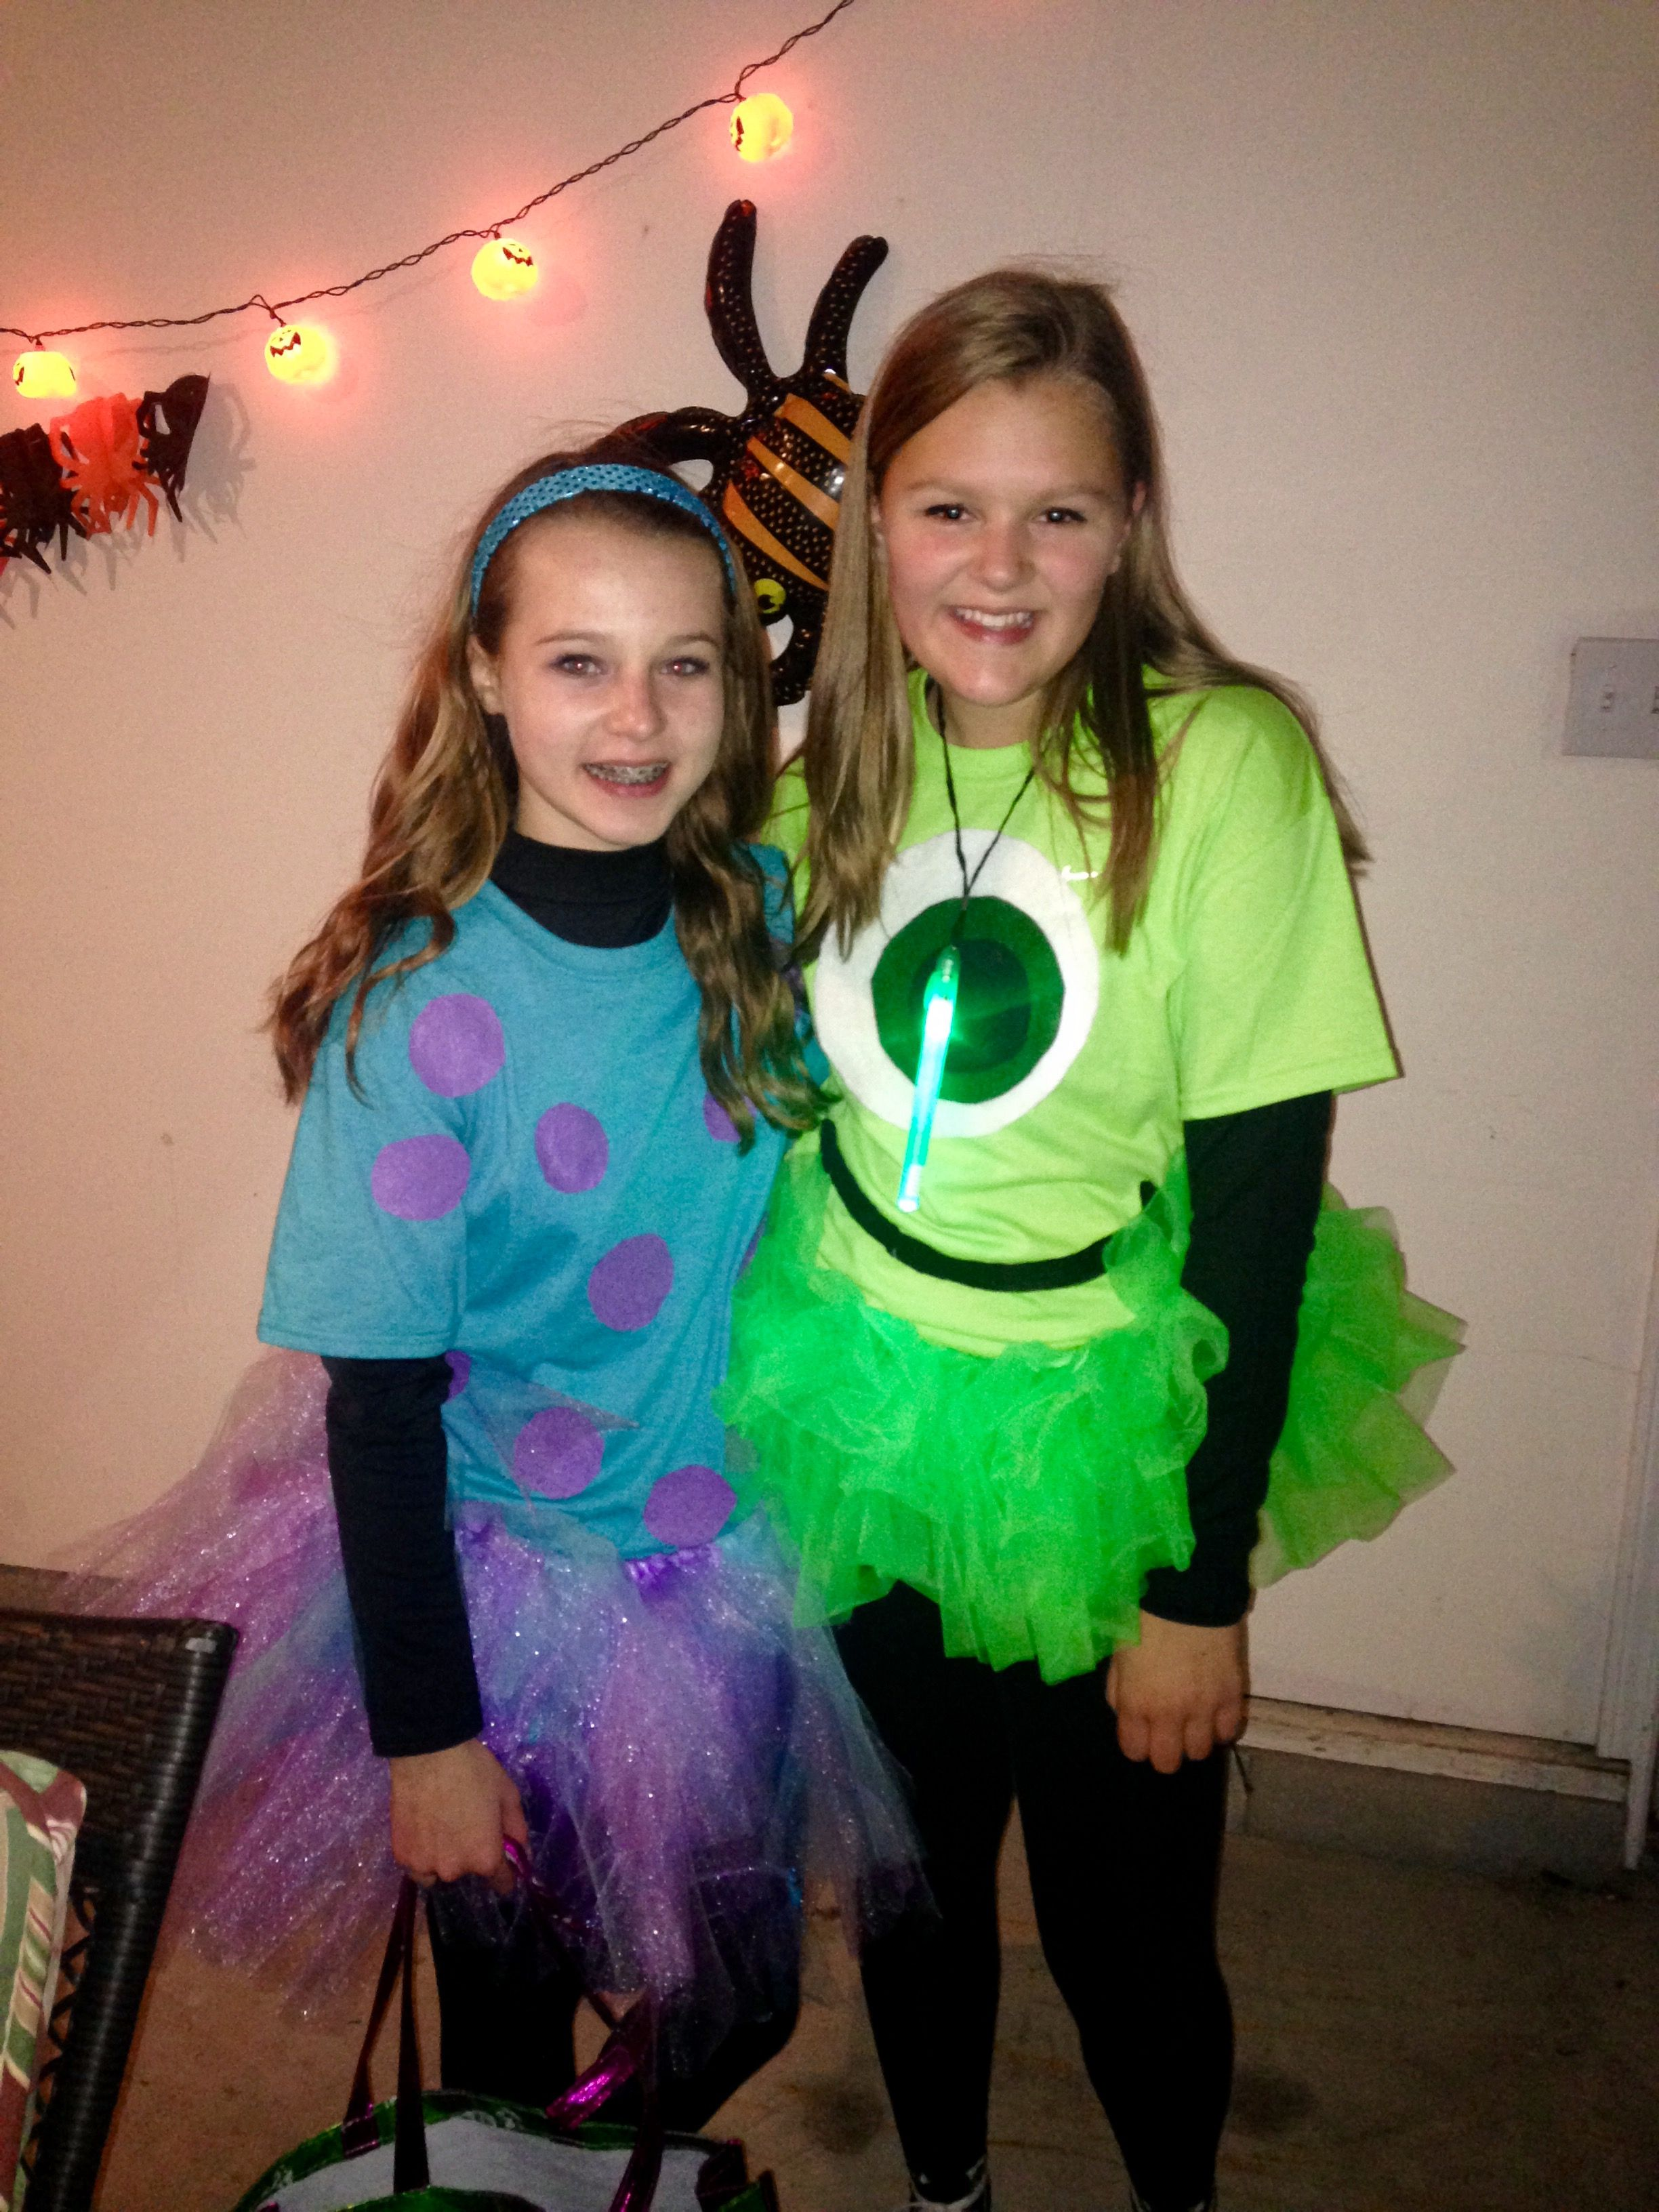 disney monsters inc halloween costumes friend costumes mike wazowski